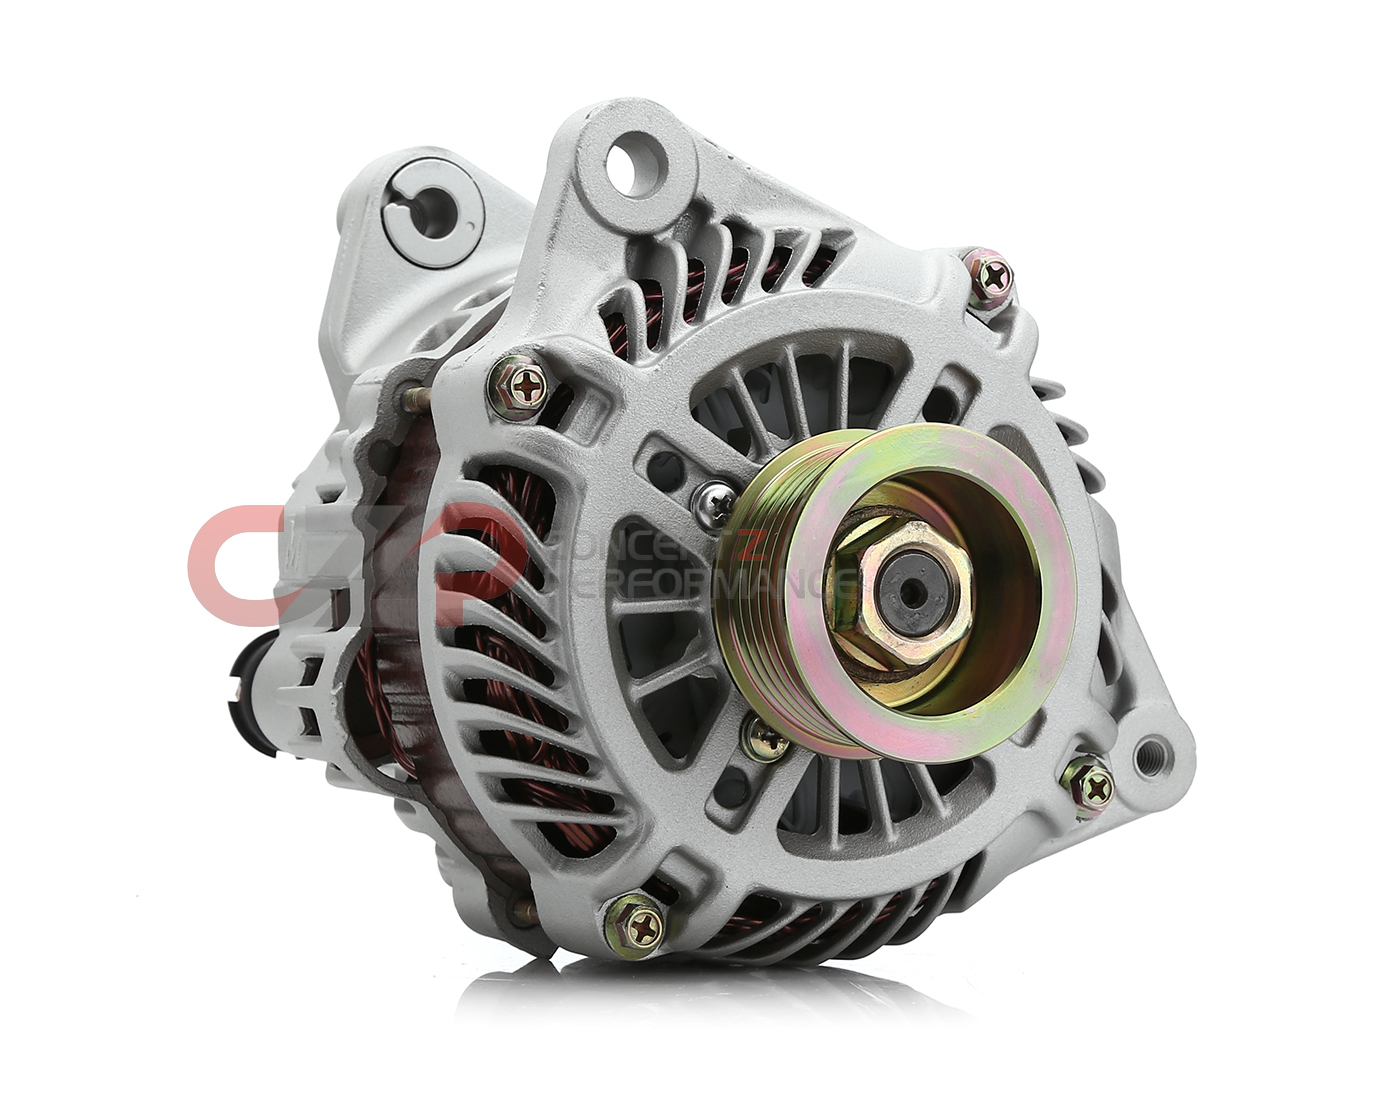 WPS 110 Amp Alternator Assembly VQ35DE - Nissan 350Z / Infiniti G35